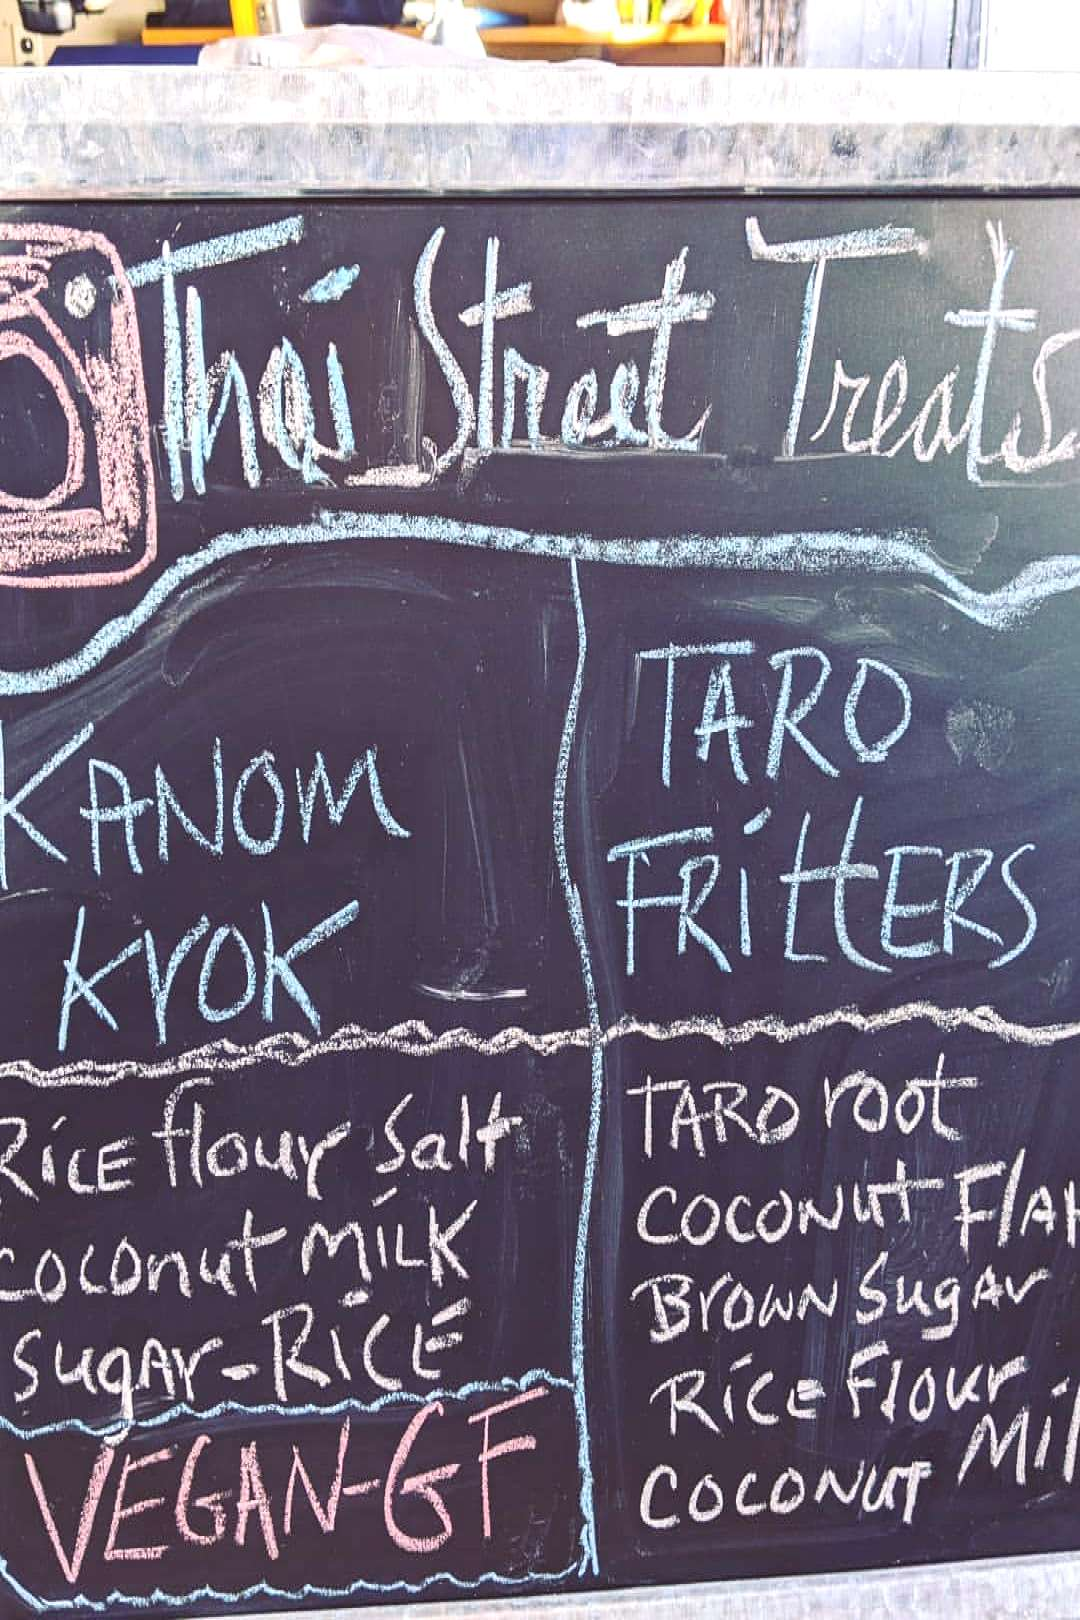 Sunday Brunch at the Berkeley Thai Temple. 10-1pm #kanomkrok#coco